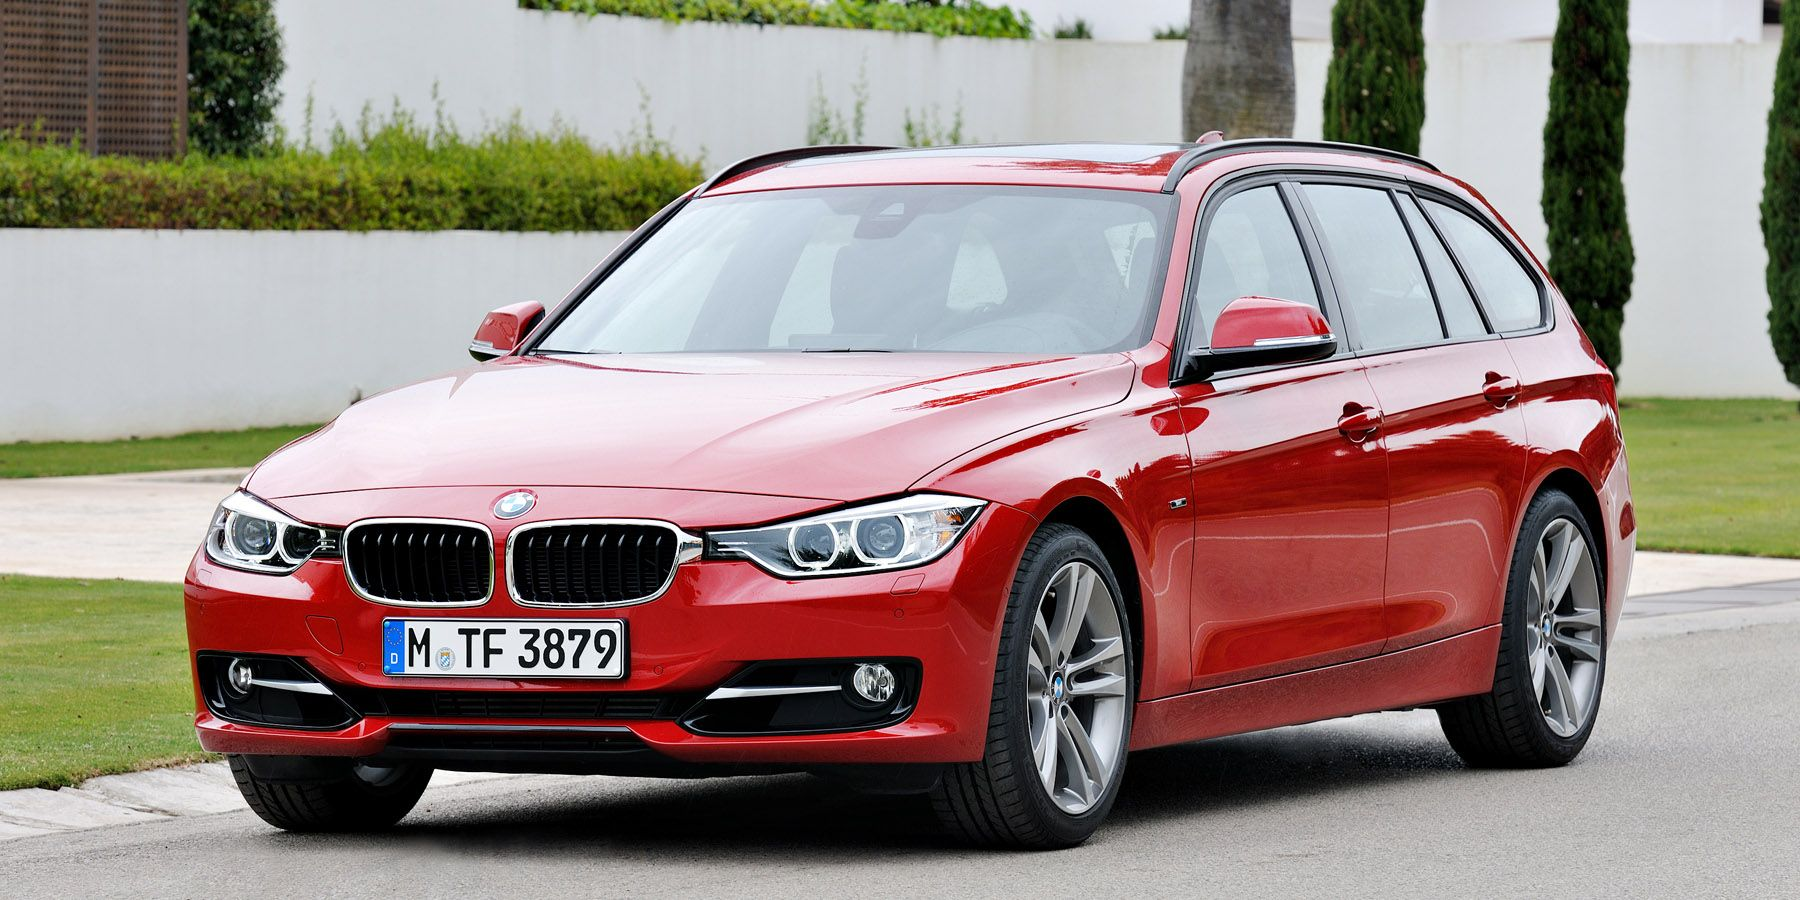 """<p>Surprised to see this car on the list? So are we, but the numbers don't lie. <a href=""""http://www.roadandtrack.com/new-cars/road-tests/a27488/2016-bmw-340i-quick-drive/"""" target=""""_blank"""" data-tracking-id=""""recirc-text-link"""">The 3-Series</a> is a great-driving German sports sedan for people who want a dose of fun and everyday driveability in their lives. However, BMW sold almost 30-percent less 3-Series cars this year than last. It seems people are going elsewhere for their sporty daily drivers.</p>"""